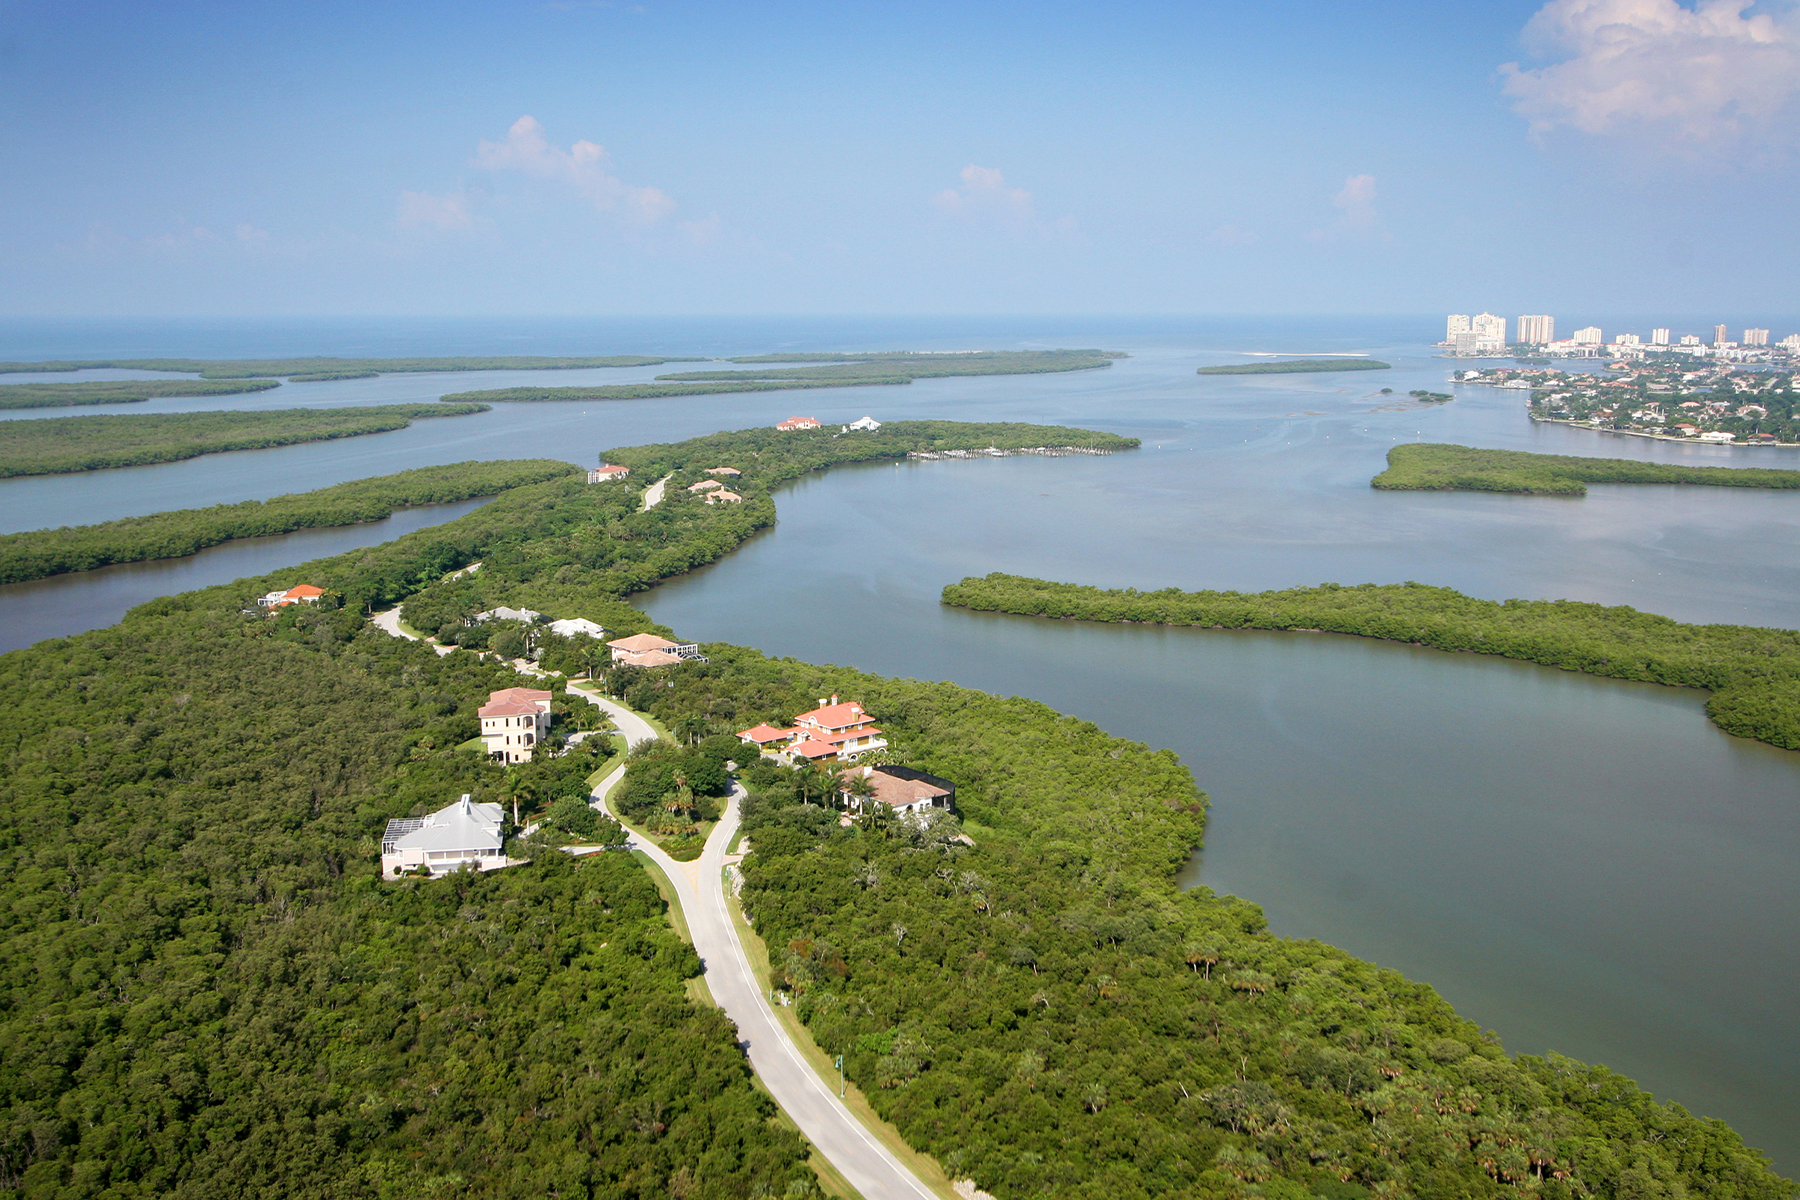 Land for Sale at KEY MARCO 923 Whiskey Creek Dr, Marco Island, Florida 34145 United States